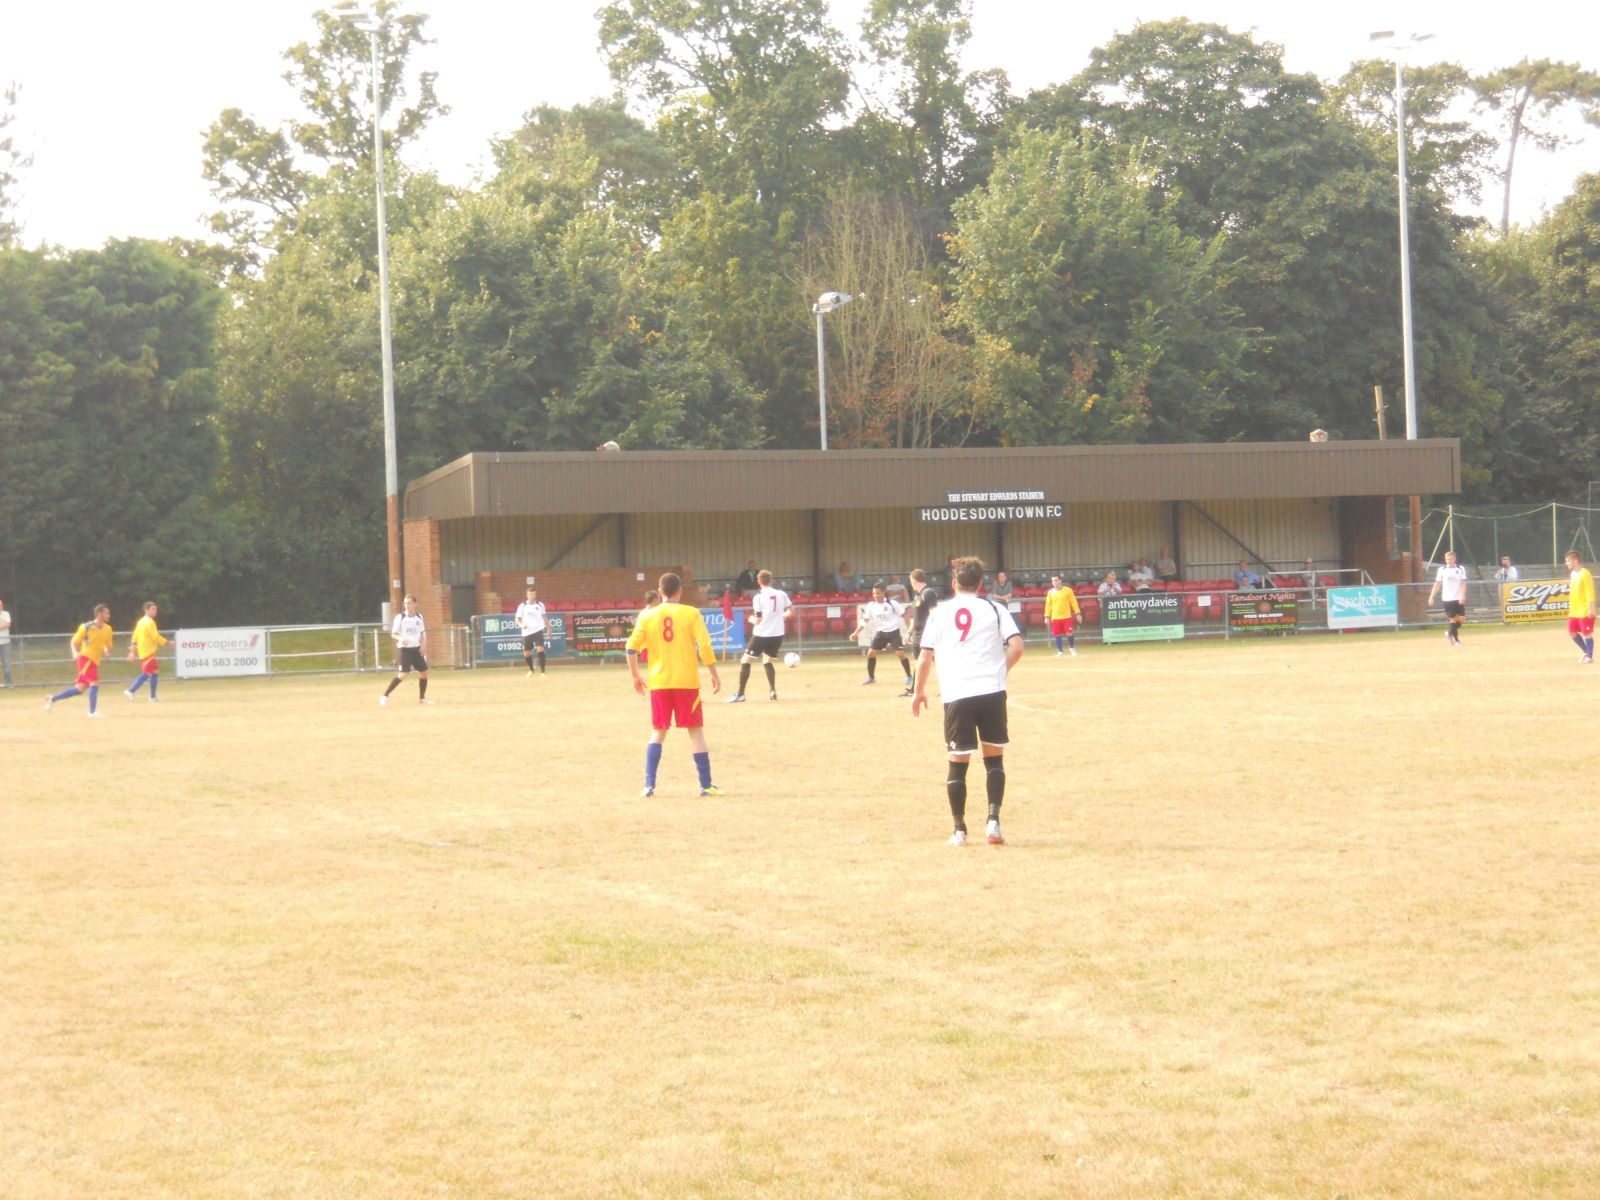 More midfield action